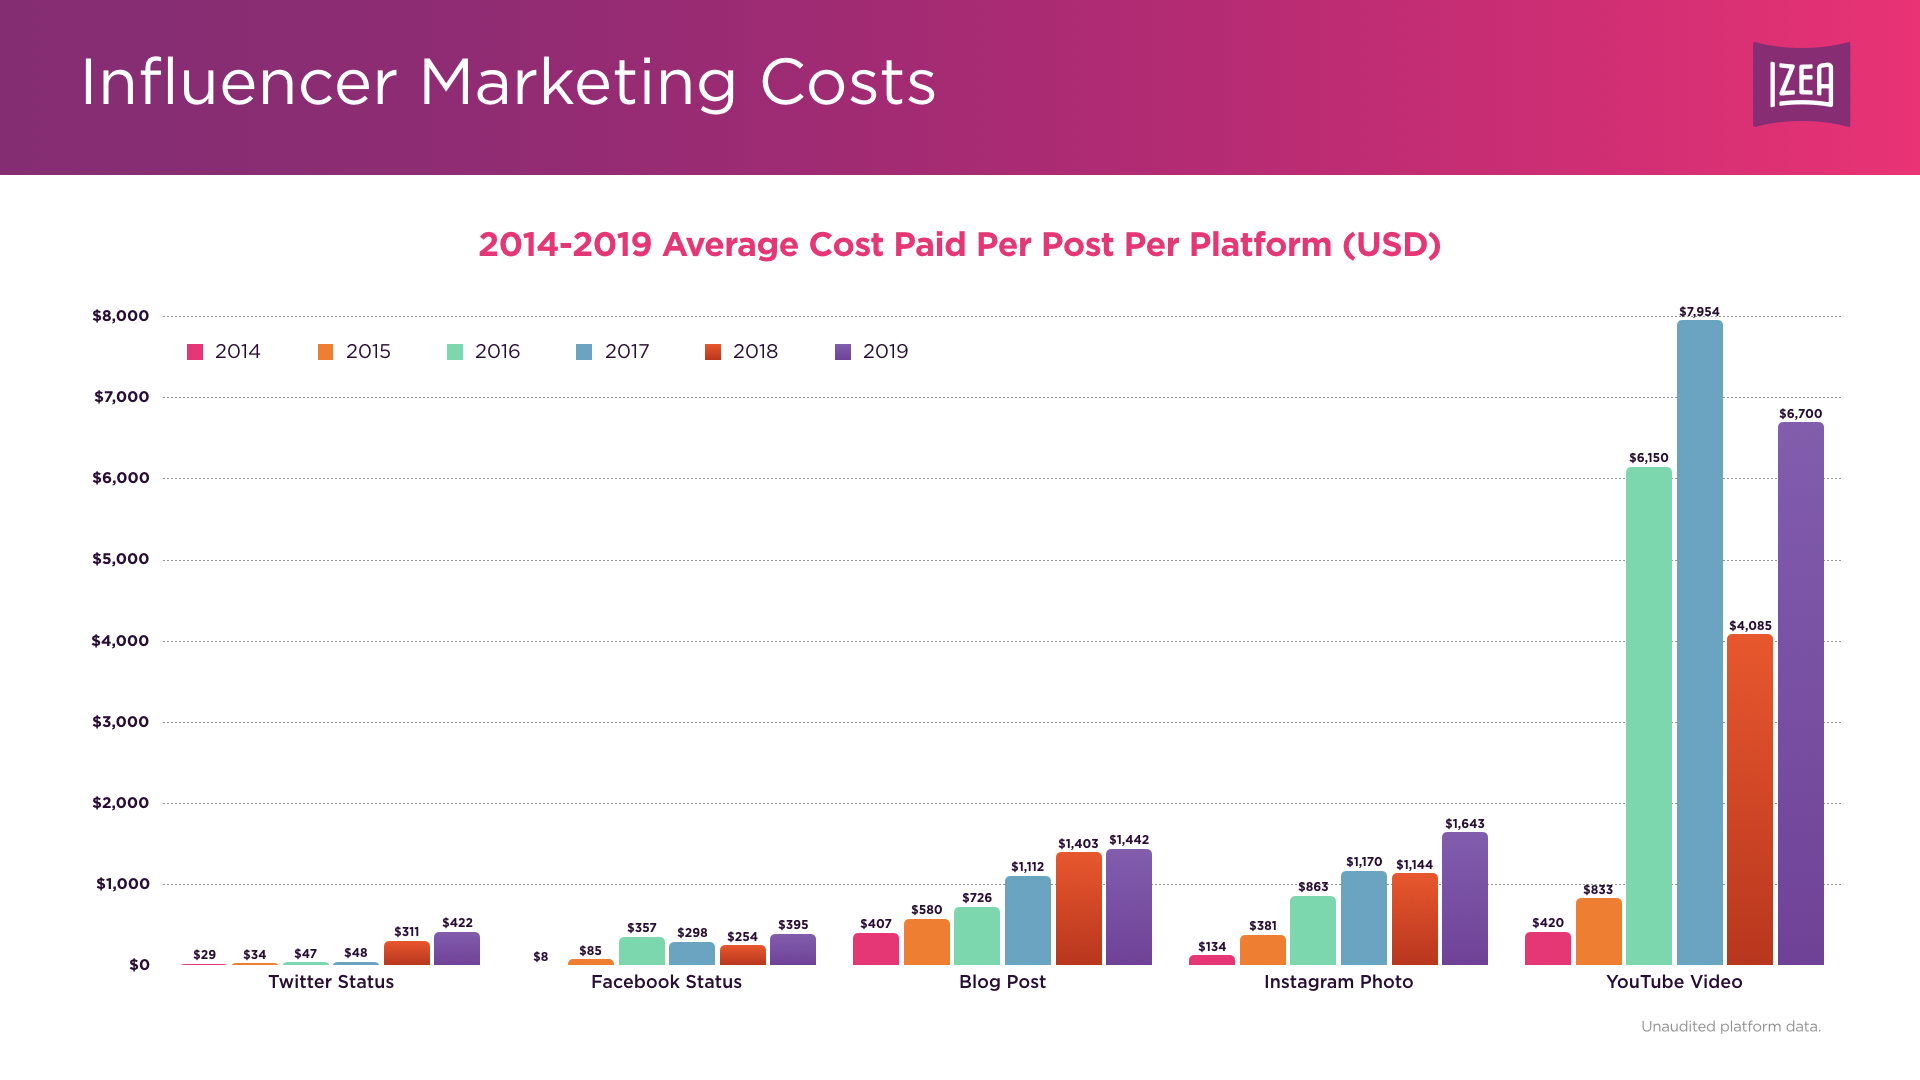 Average Cost Paid To Influencers